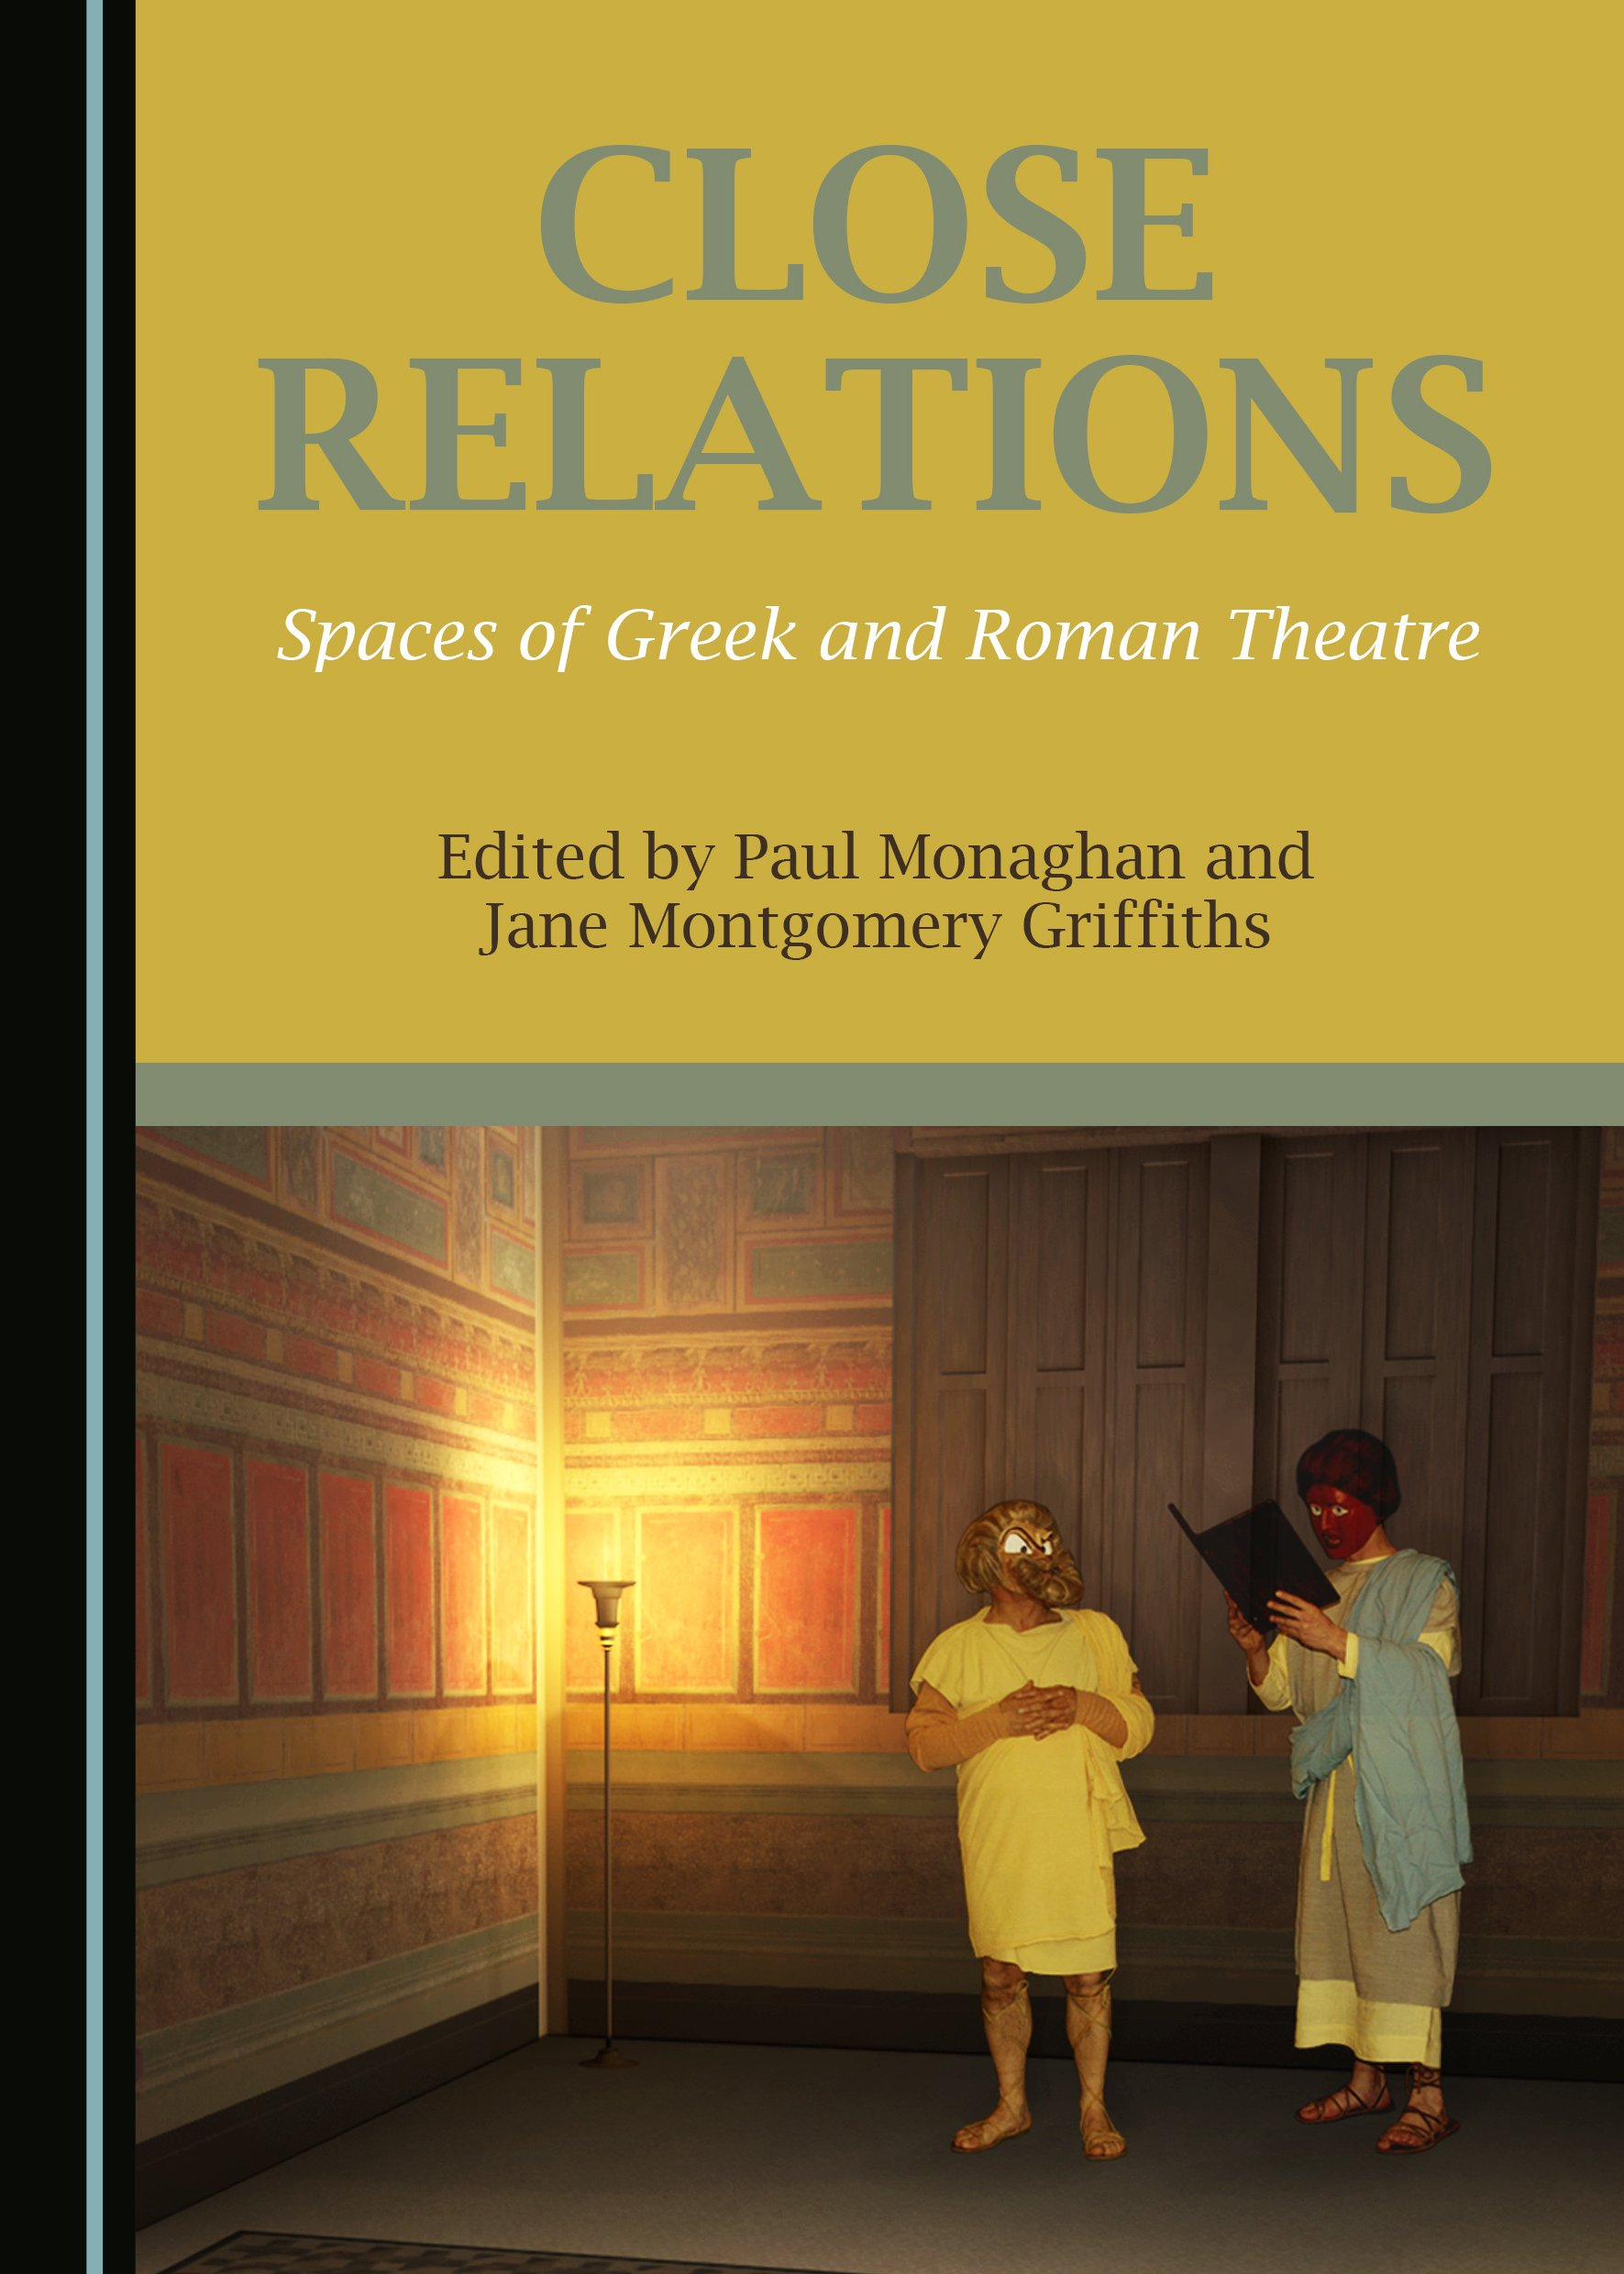 Close Relations: Spaces of Greek and Roman Theatre